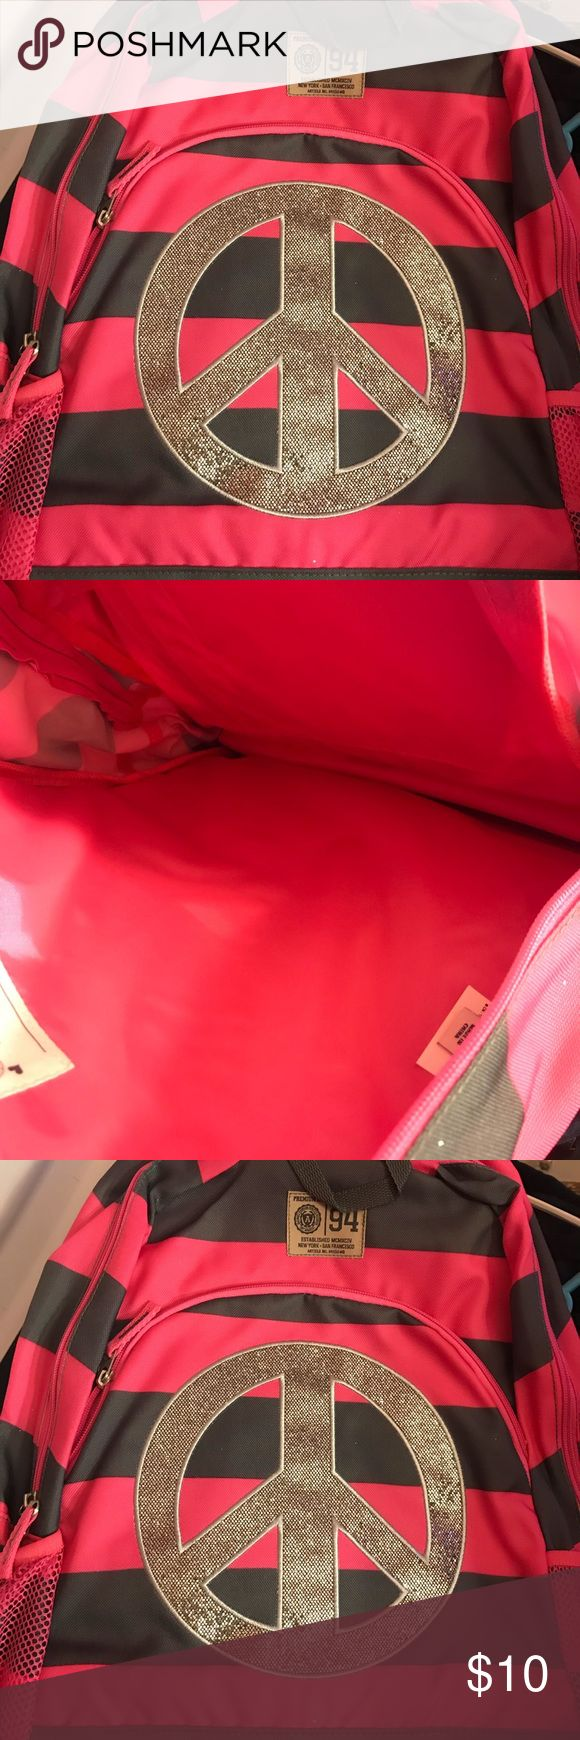 Old Navy Hot Pink Backpack New Backpack Old Navy Accessories Bags